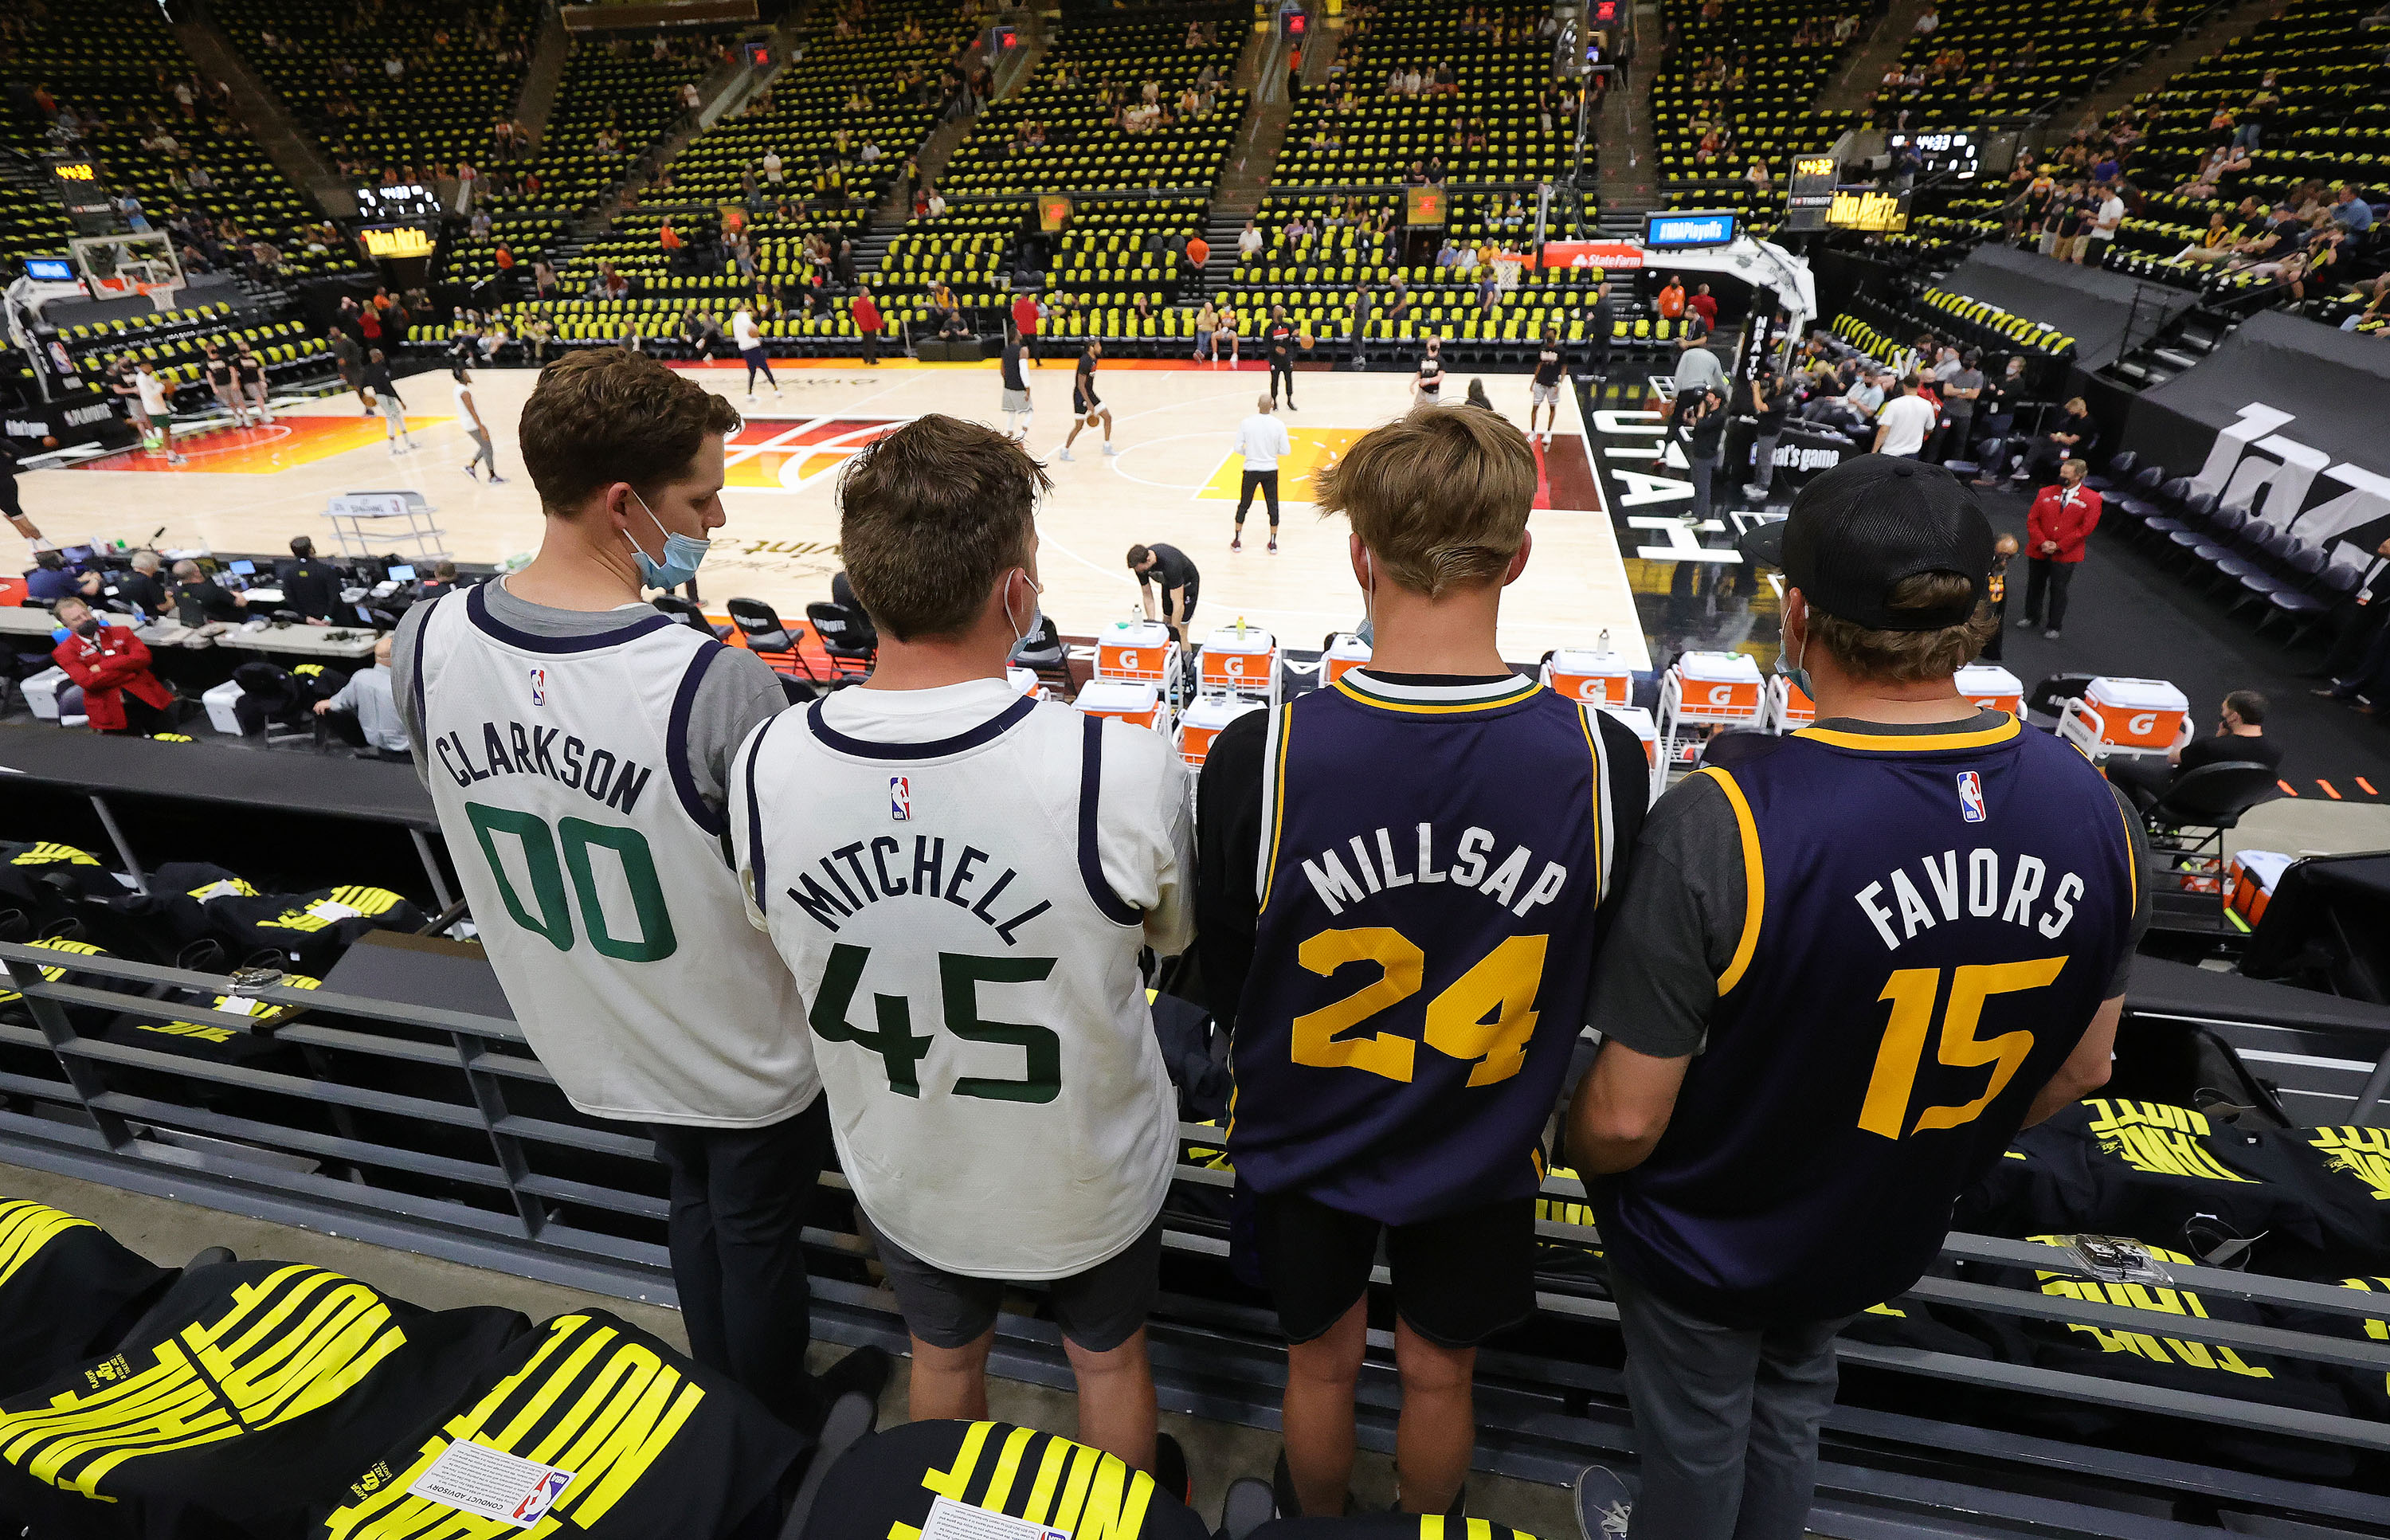 """Four Utah Jazz fans wearing """"Clarkson,"""" """"Mitchell,"""" """"Millsap"""" and """"Favors"""" jerseys watch pregame activities for Game 5 of the NBA playoffs between the Utah Jazz and the LA Clippers in Salt Lake City on Wednesday, June 16, 2021."""